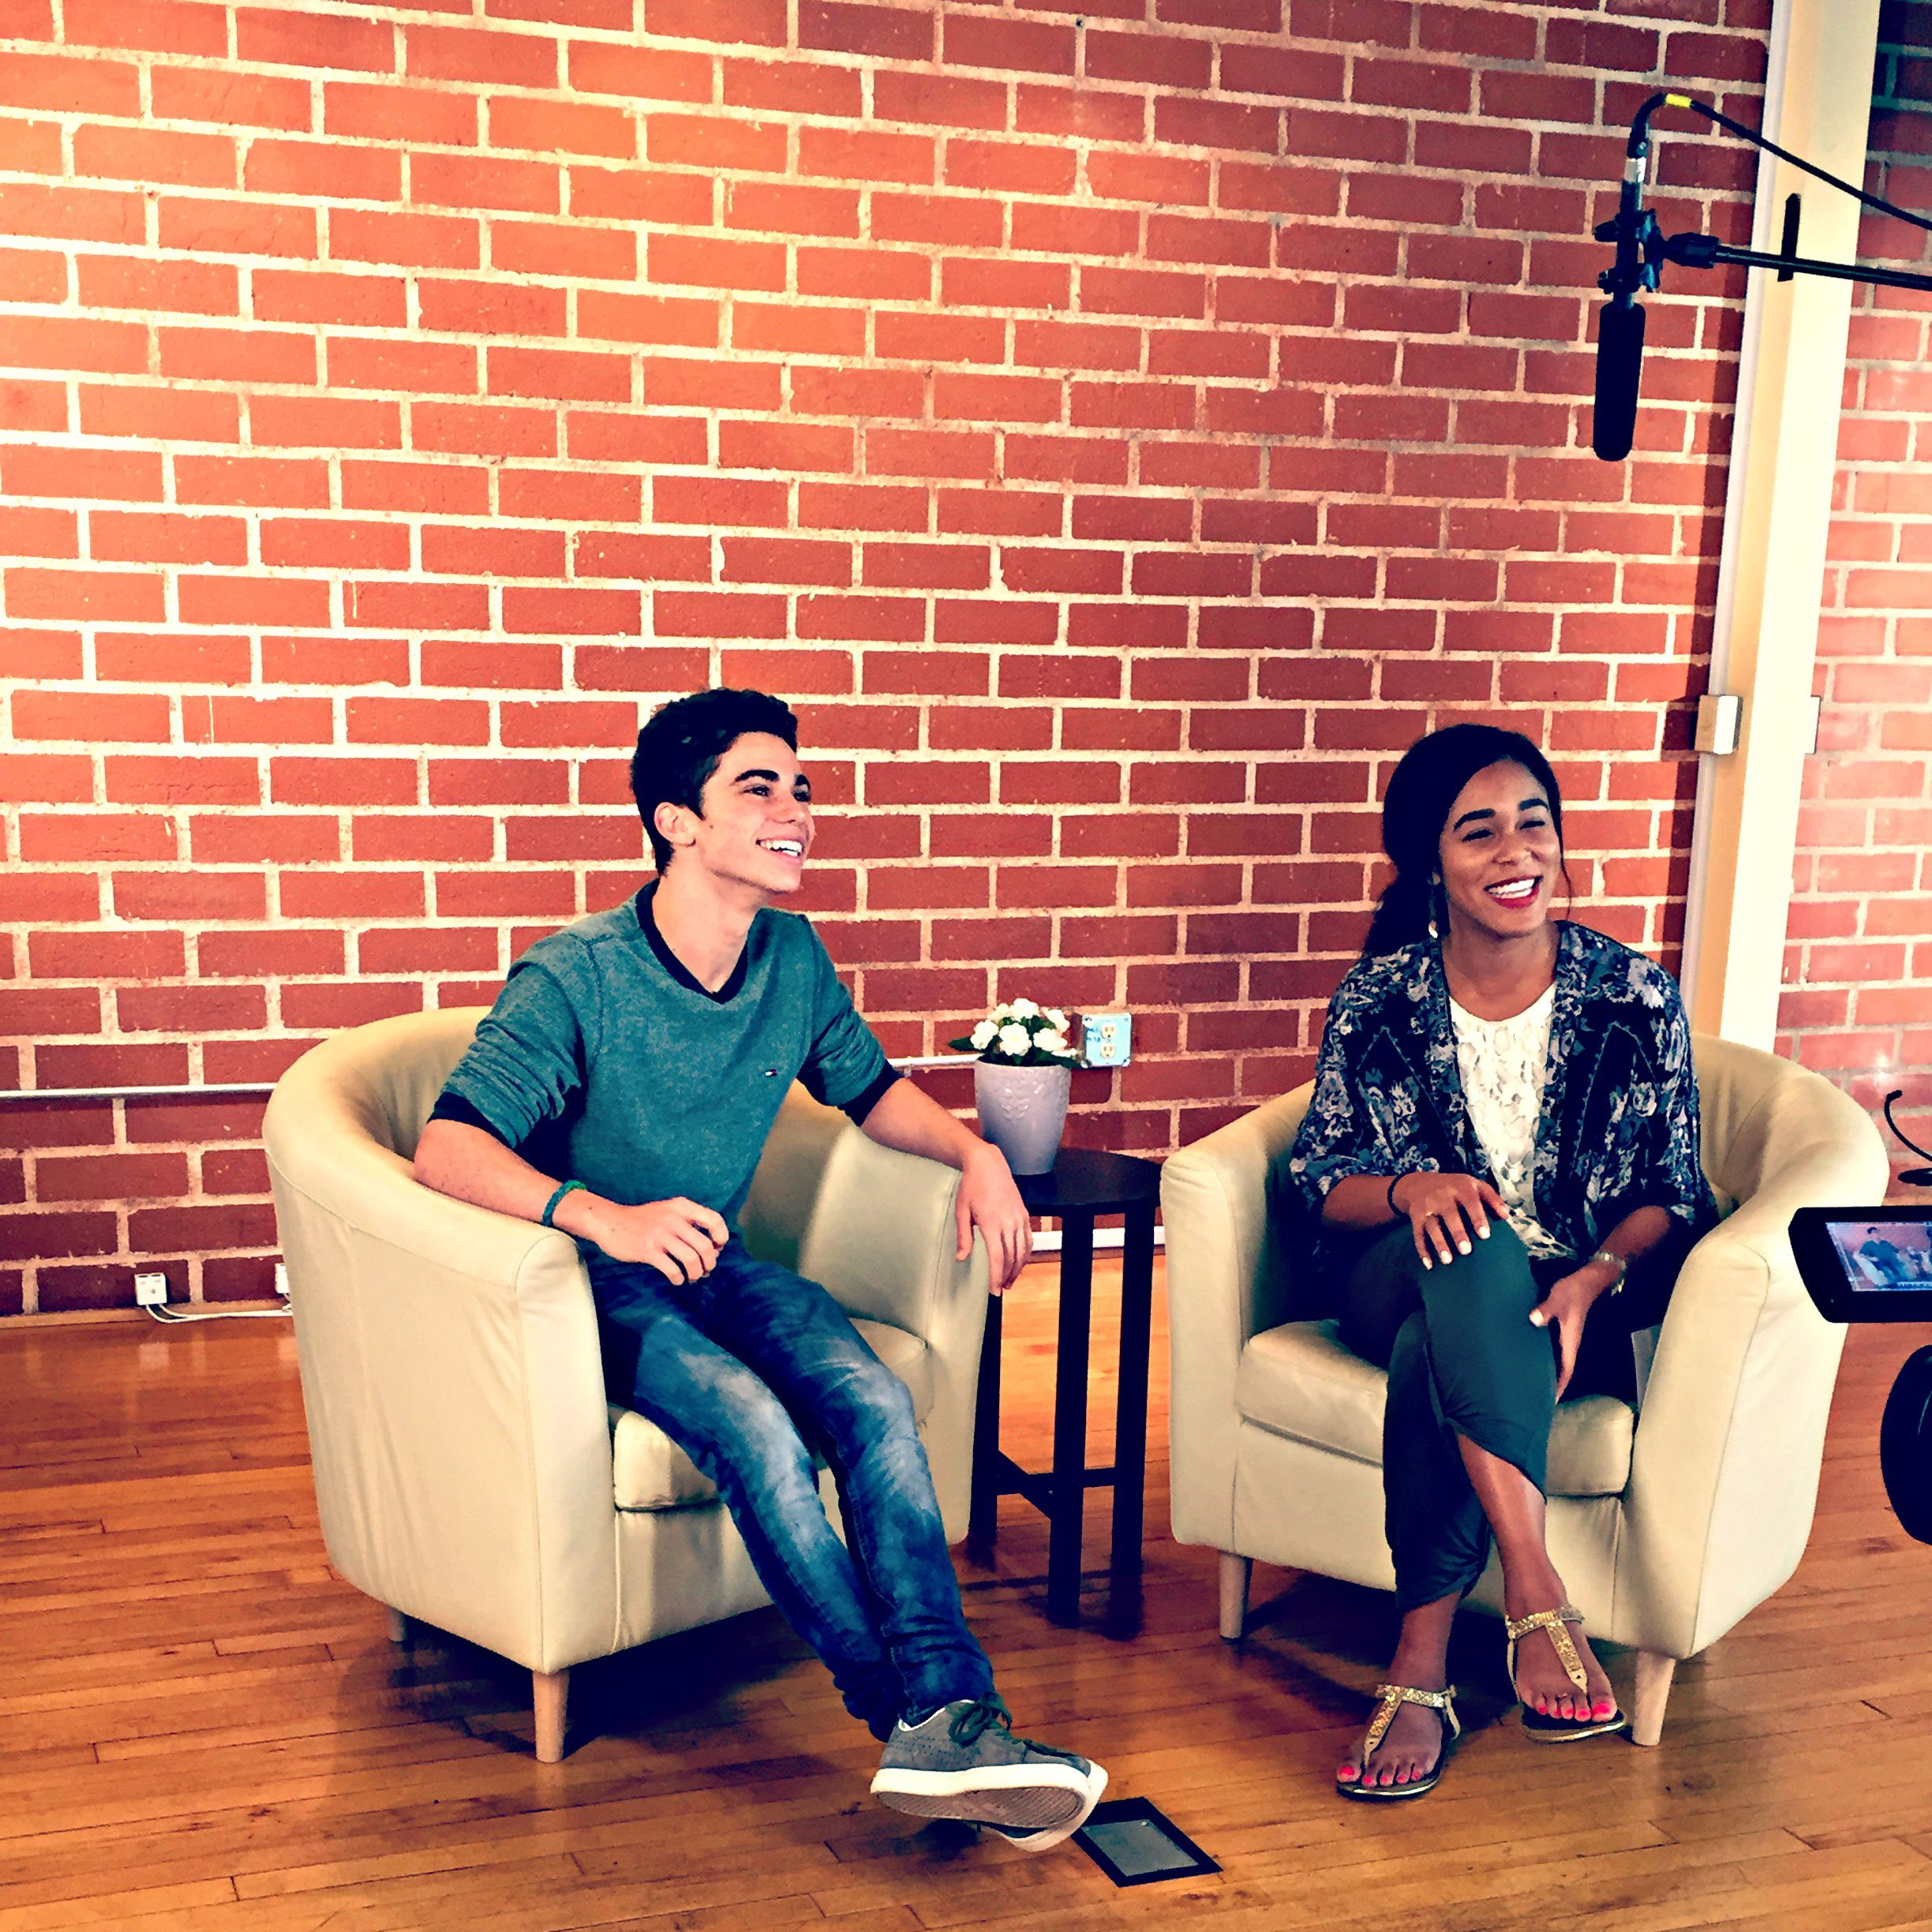 Behind the scenes with actor Cameron Boyce at his Fanlala